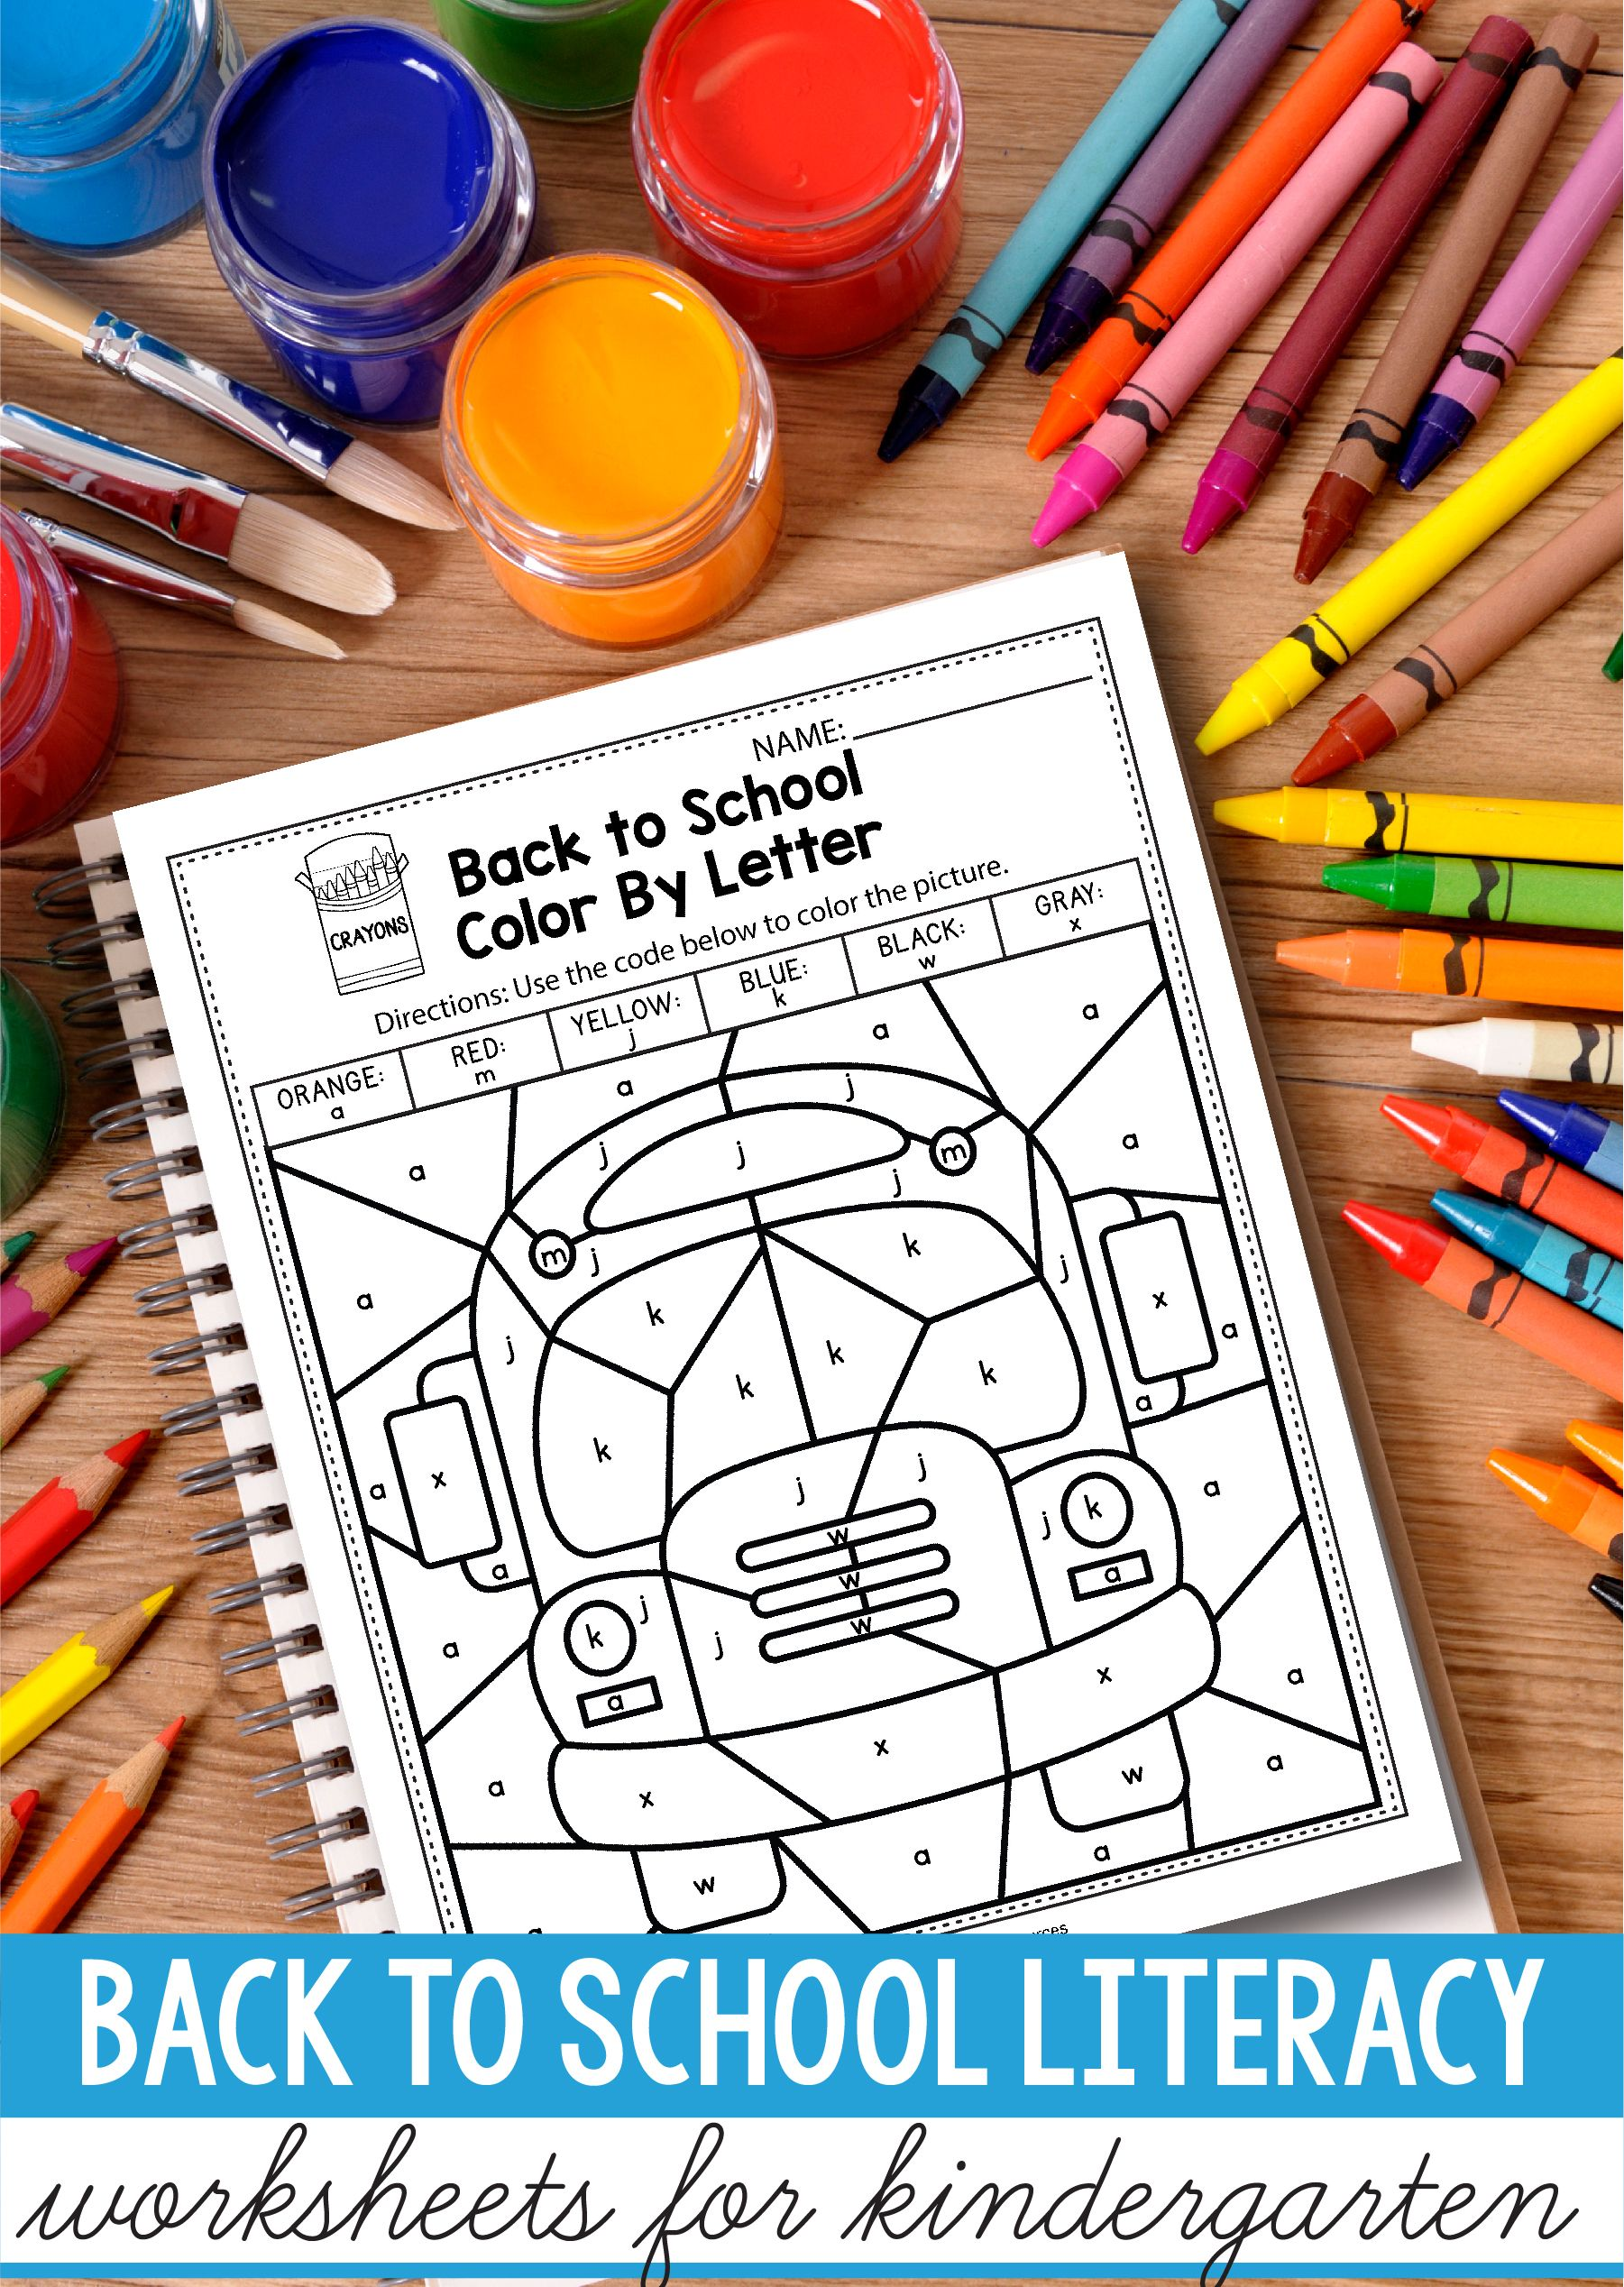 Back To School Literacy Activities For Kindergarten 1st Grade And Preschool Is Fun With This